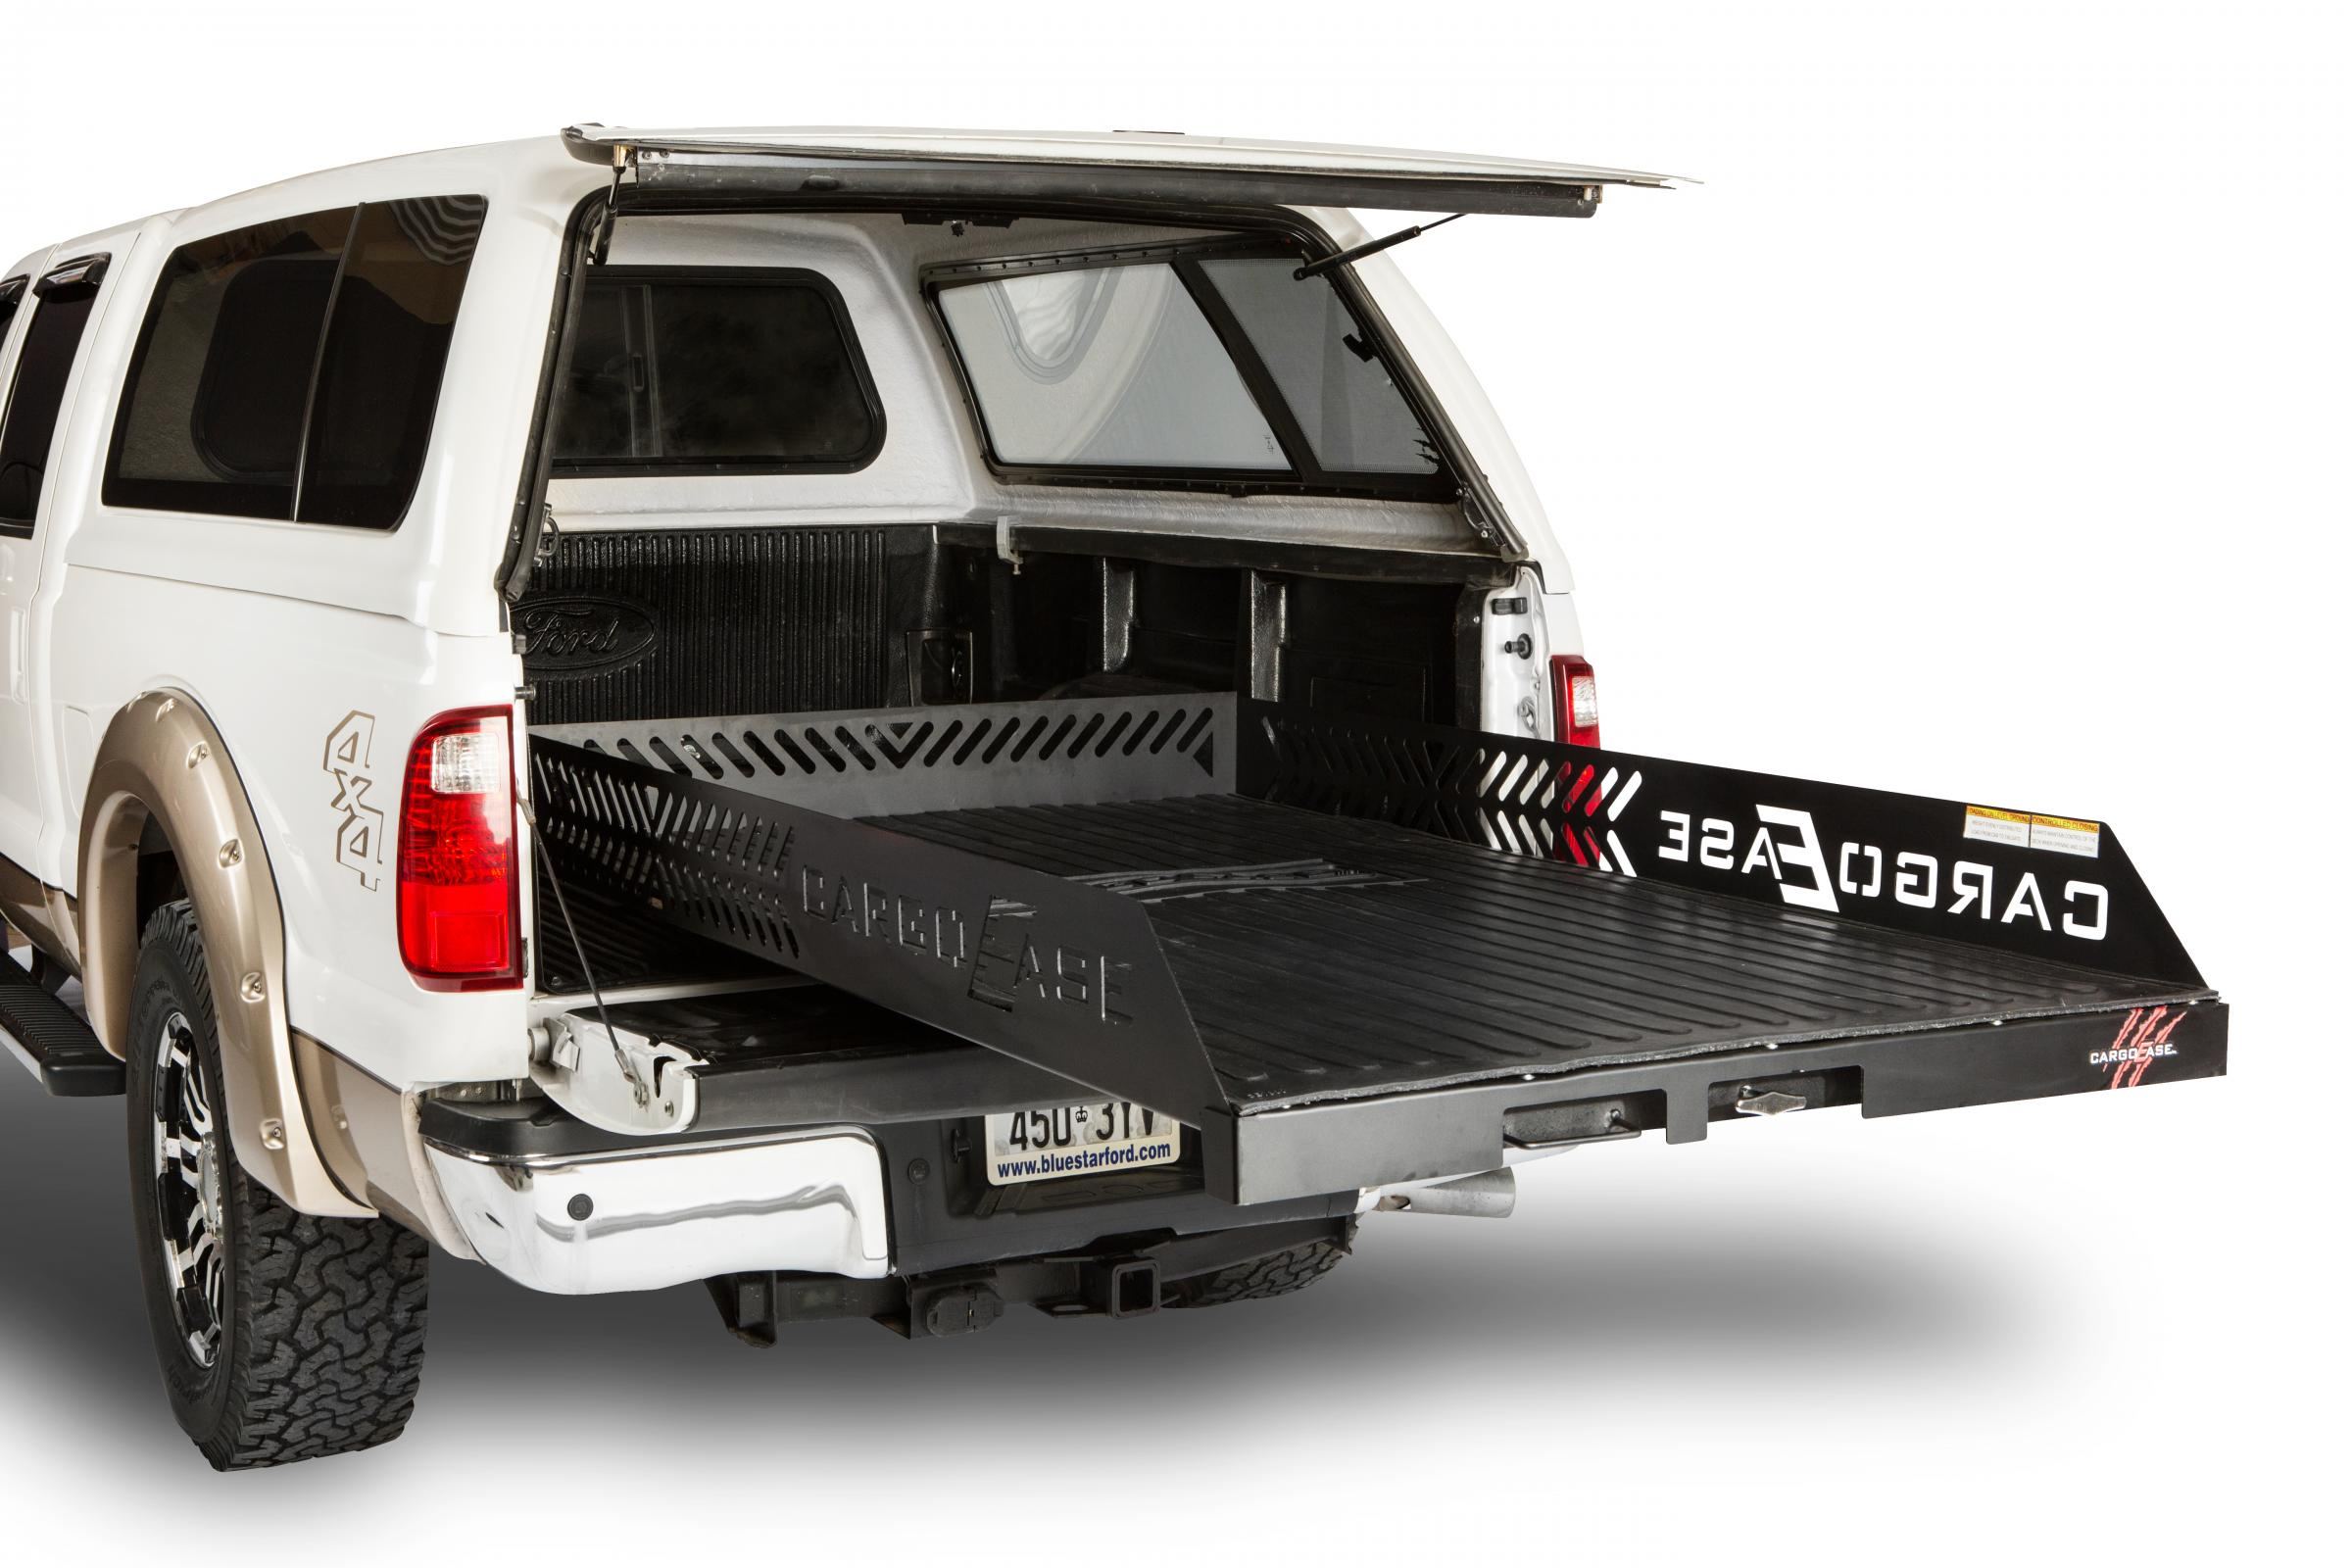 CE9548C15 Cargo Ease Bed Slide 1500 Pound Capacity